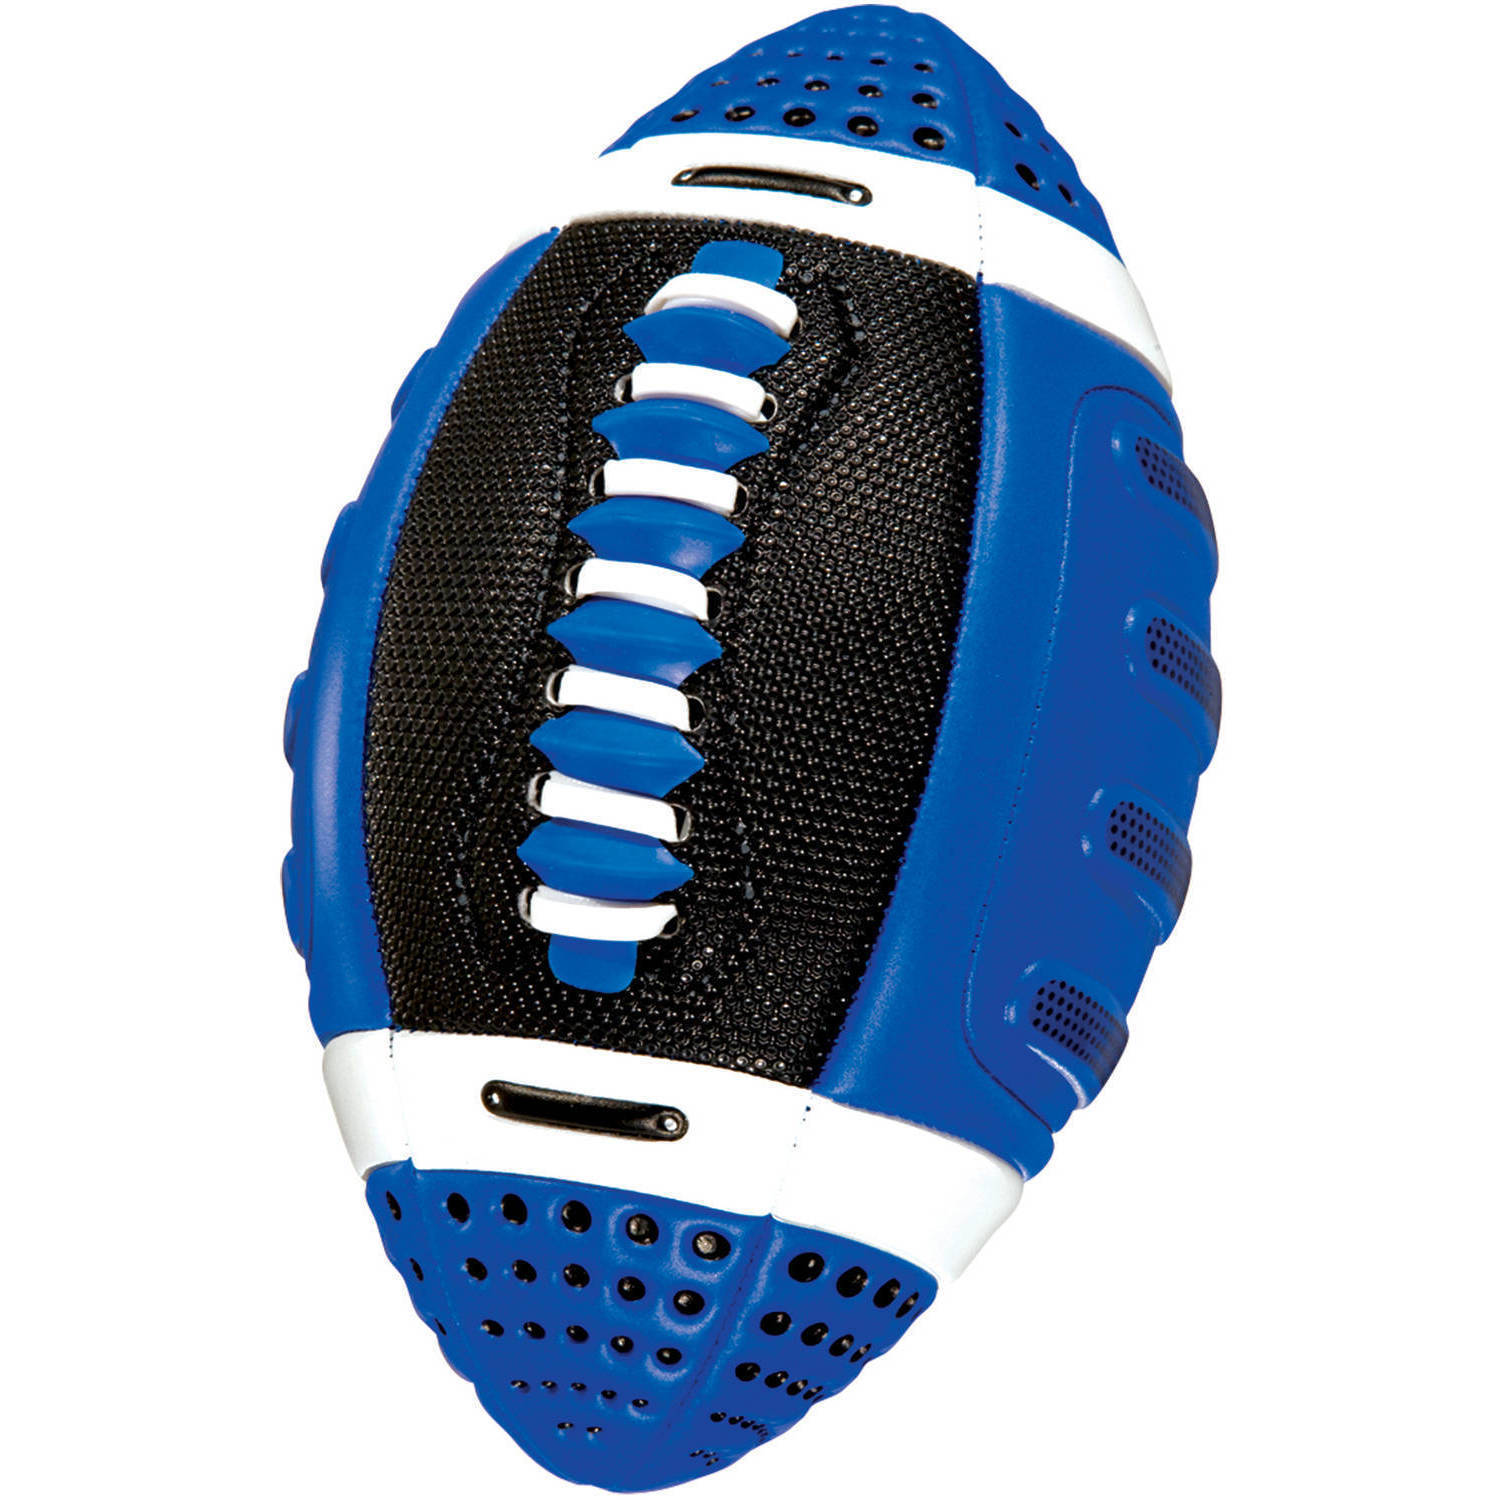 Franklin Sports Mini Grip Tech Space Lace Football by Franklin Sports